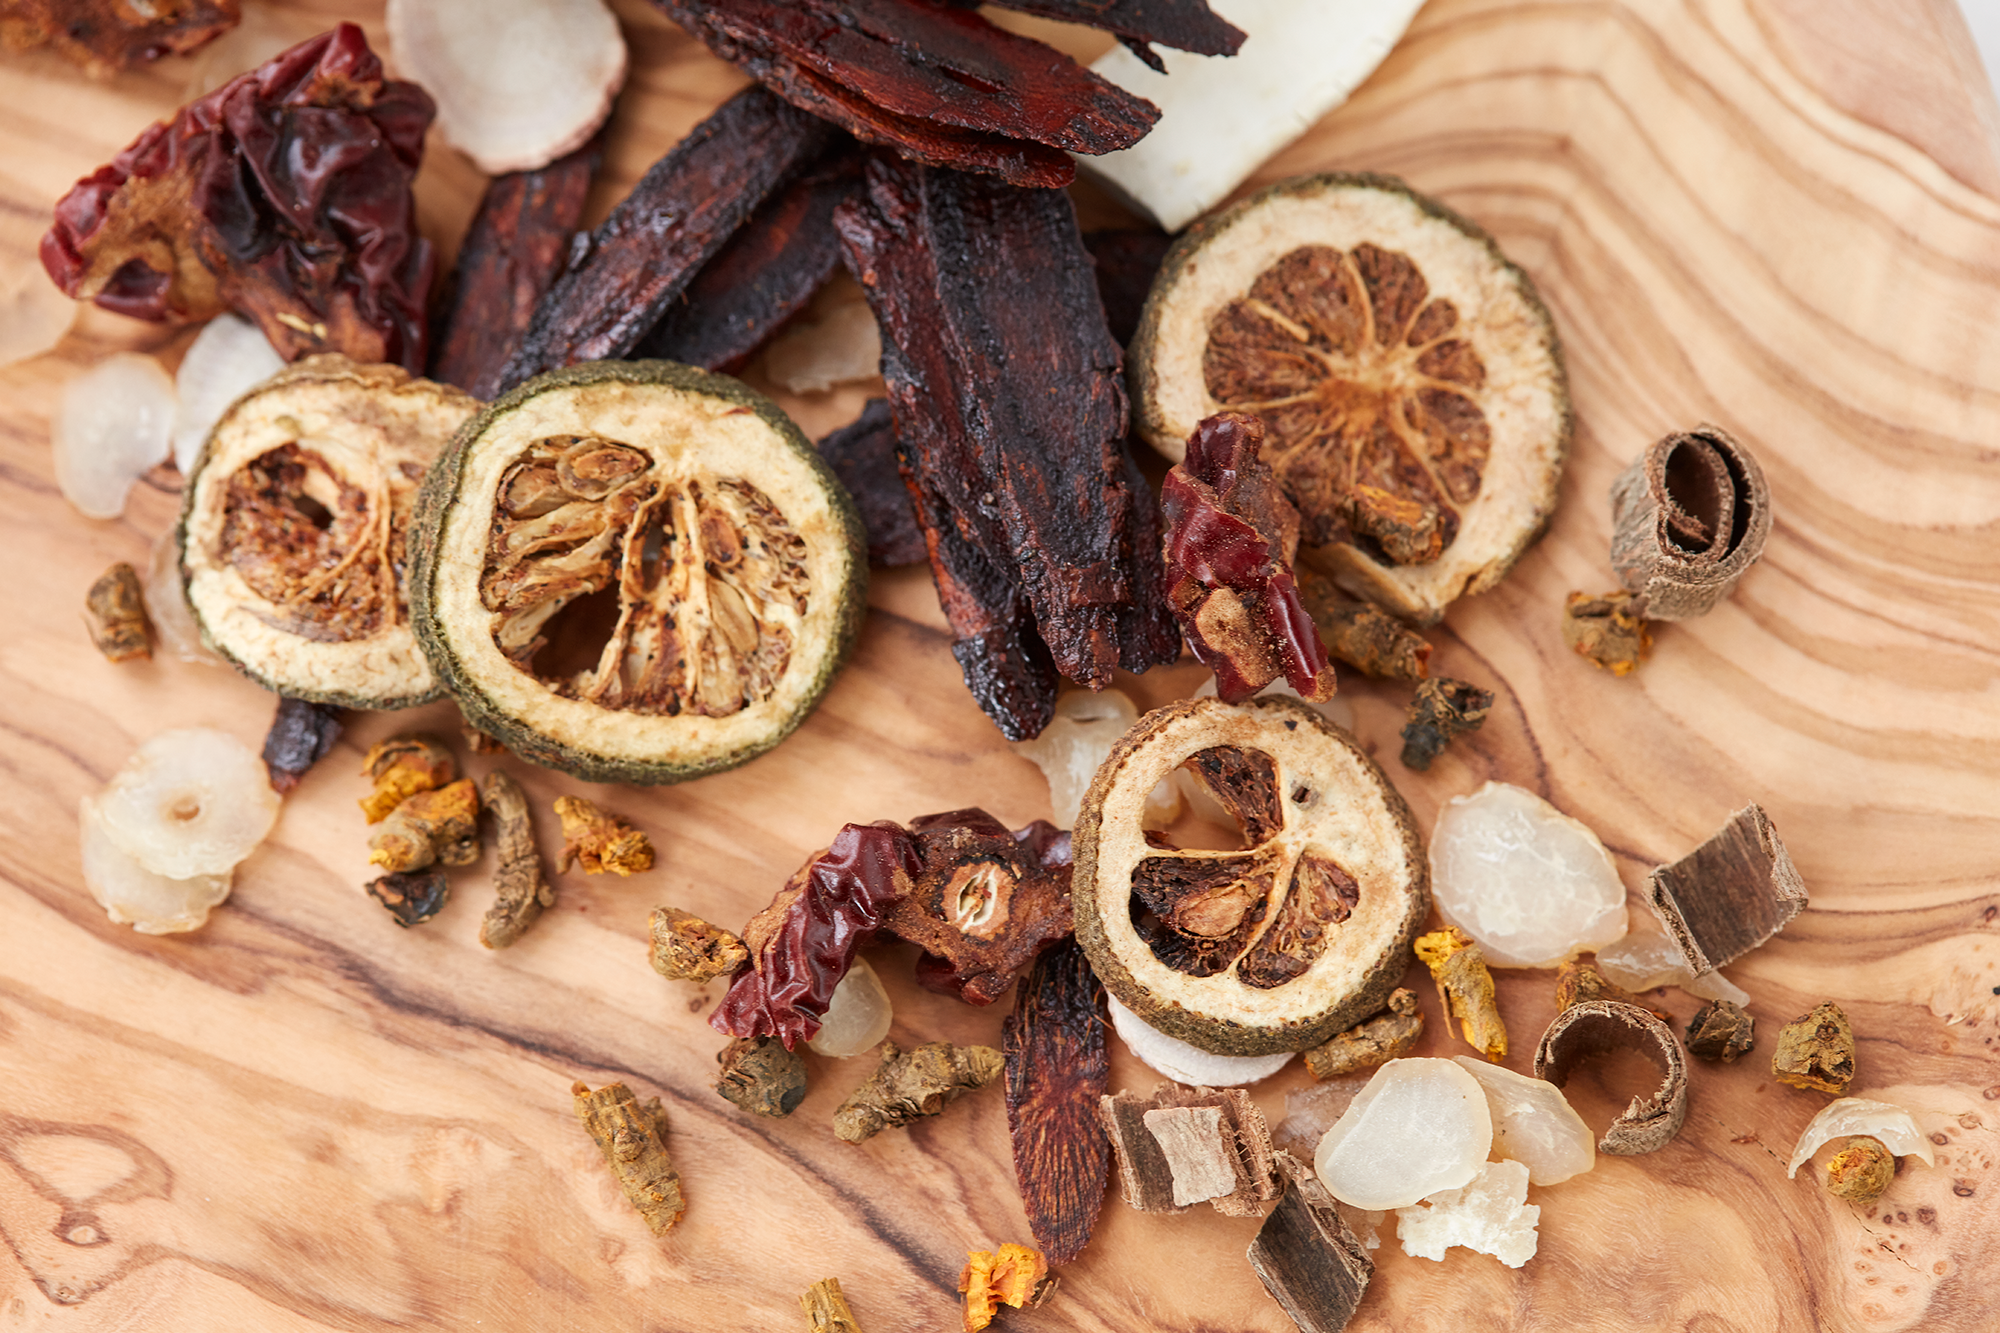 HERBAL MEDICINE - We offer Chinese Herbal medicine in various formulas and types.